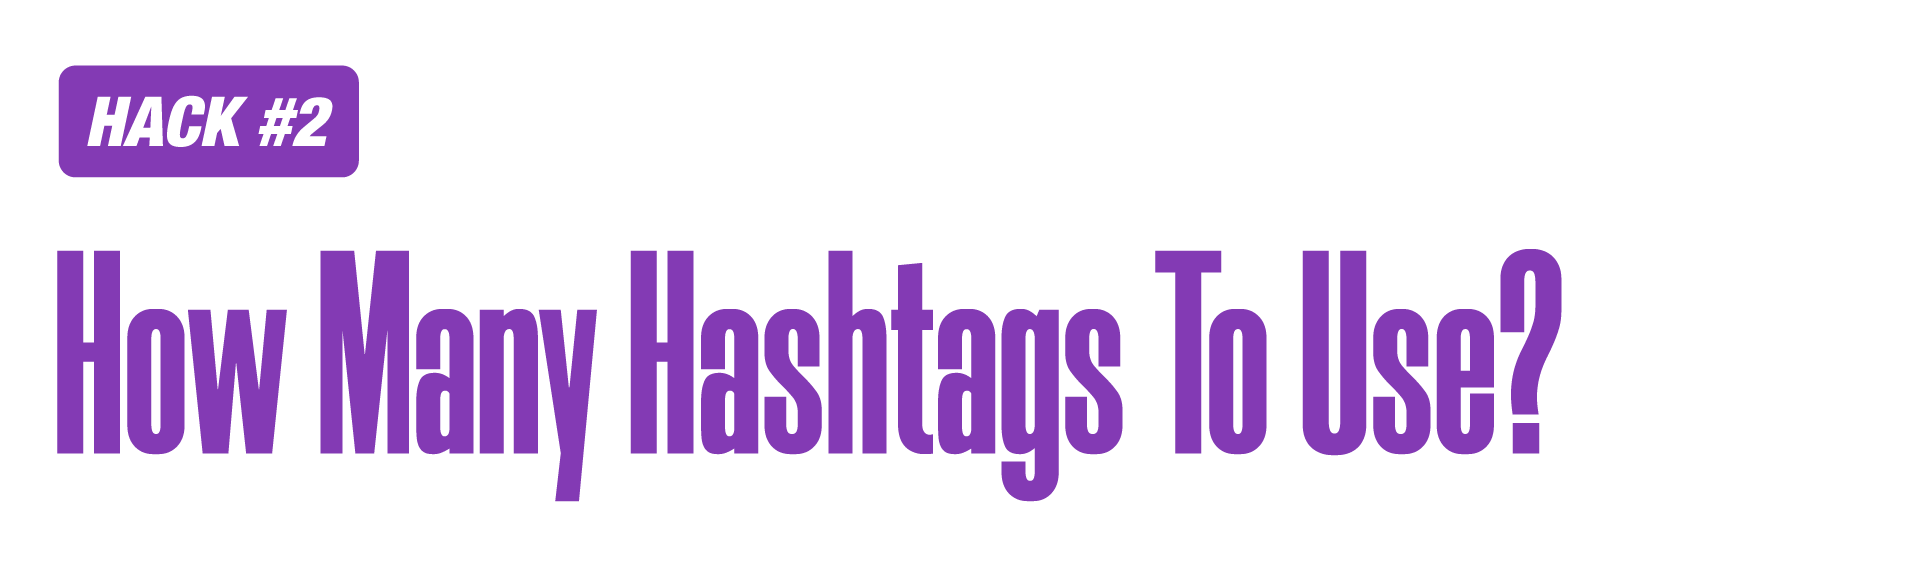 Instagram Marketing Hack: Use hashtags